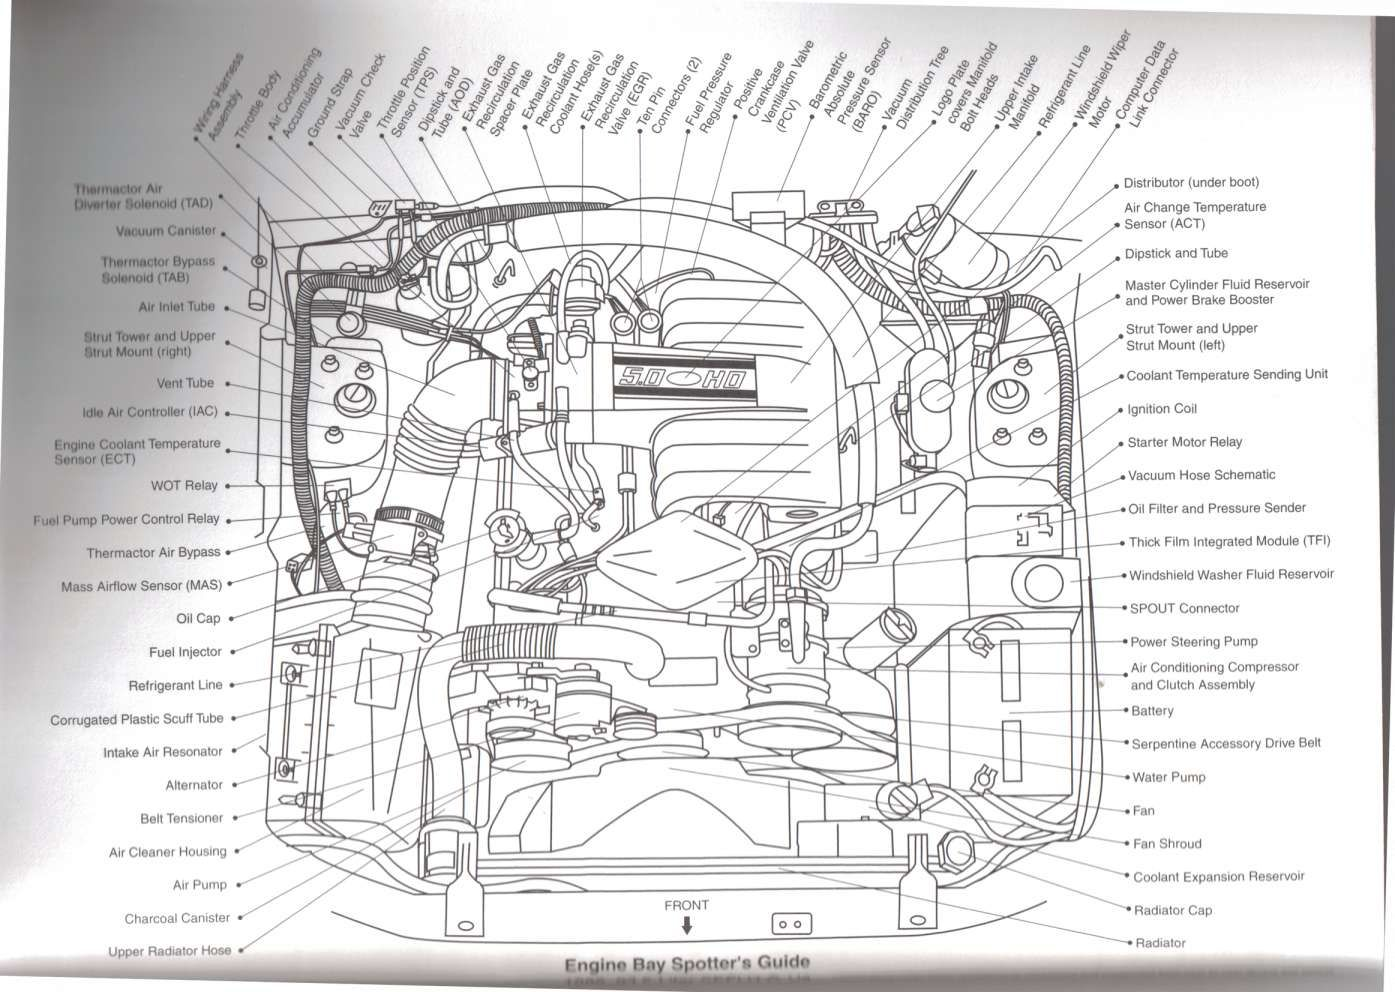 ford 3 8 v6 engine diagram 1998 ford mustang engine diagram e1 wiring diagram  1998 ford mustang engine diagram e1